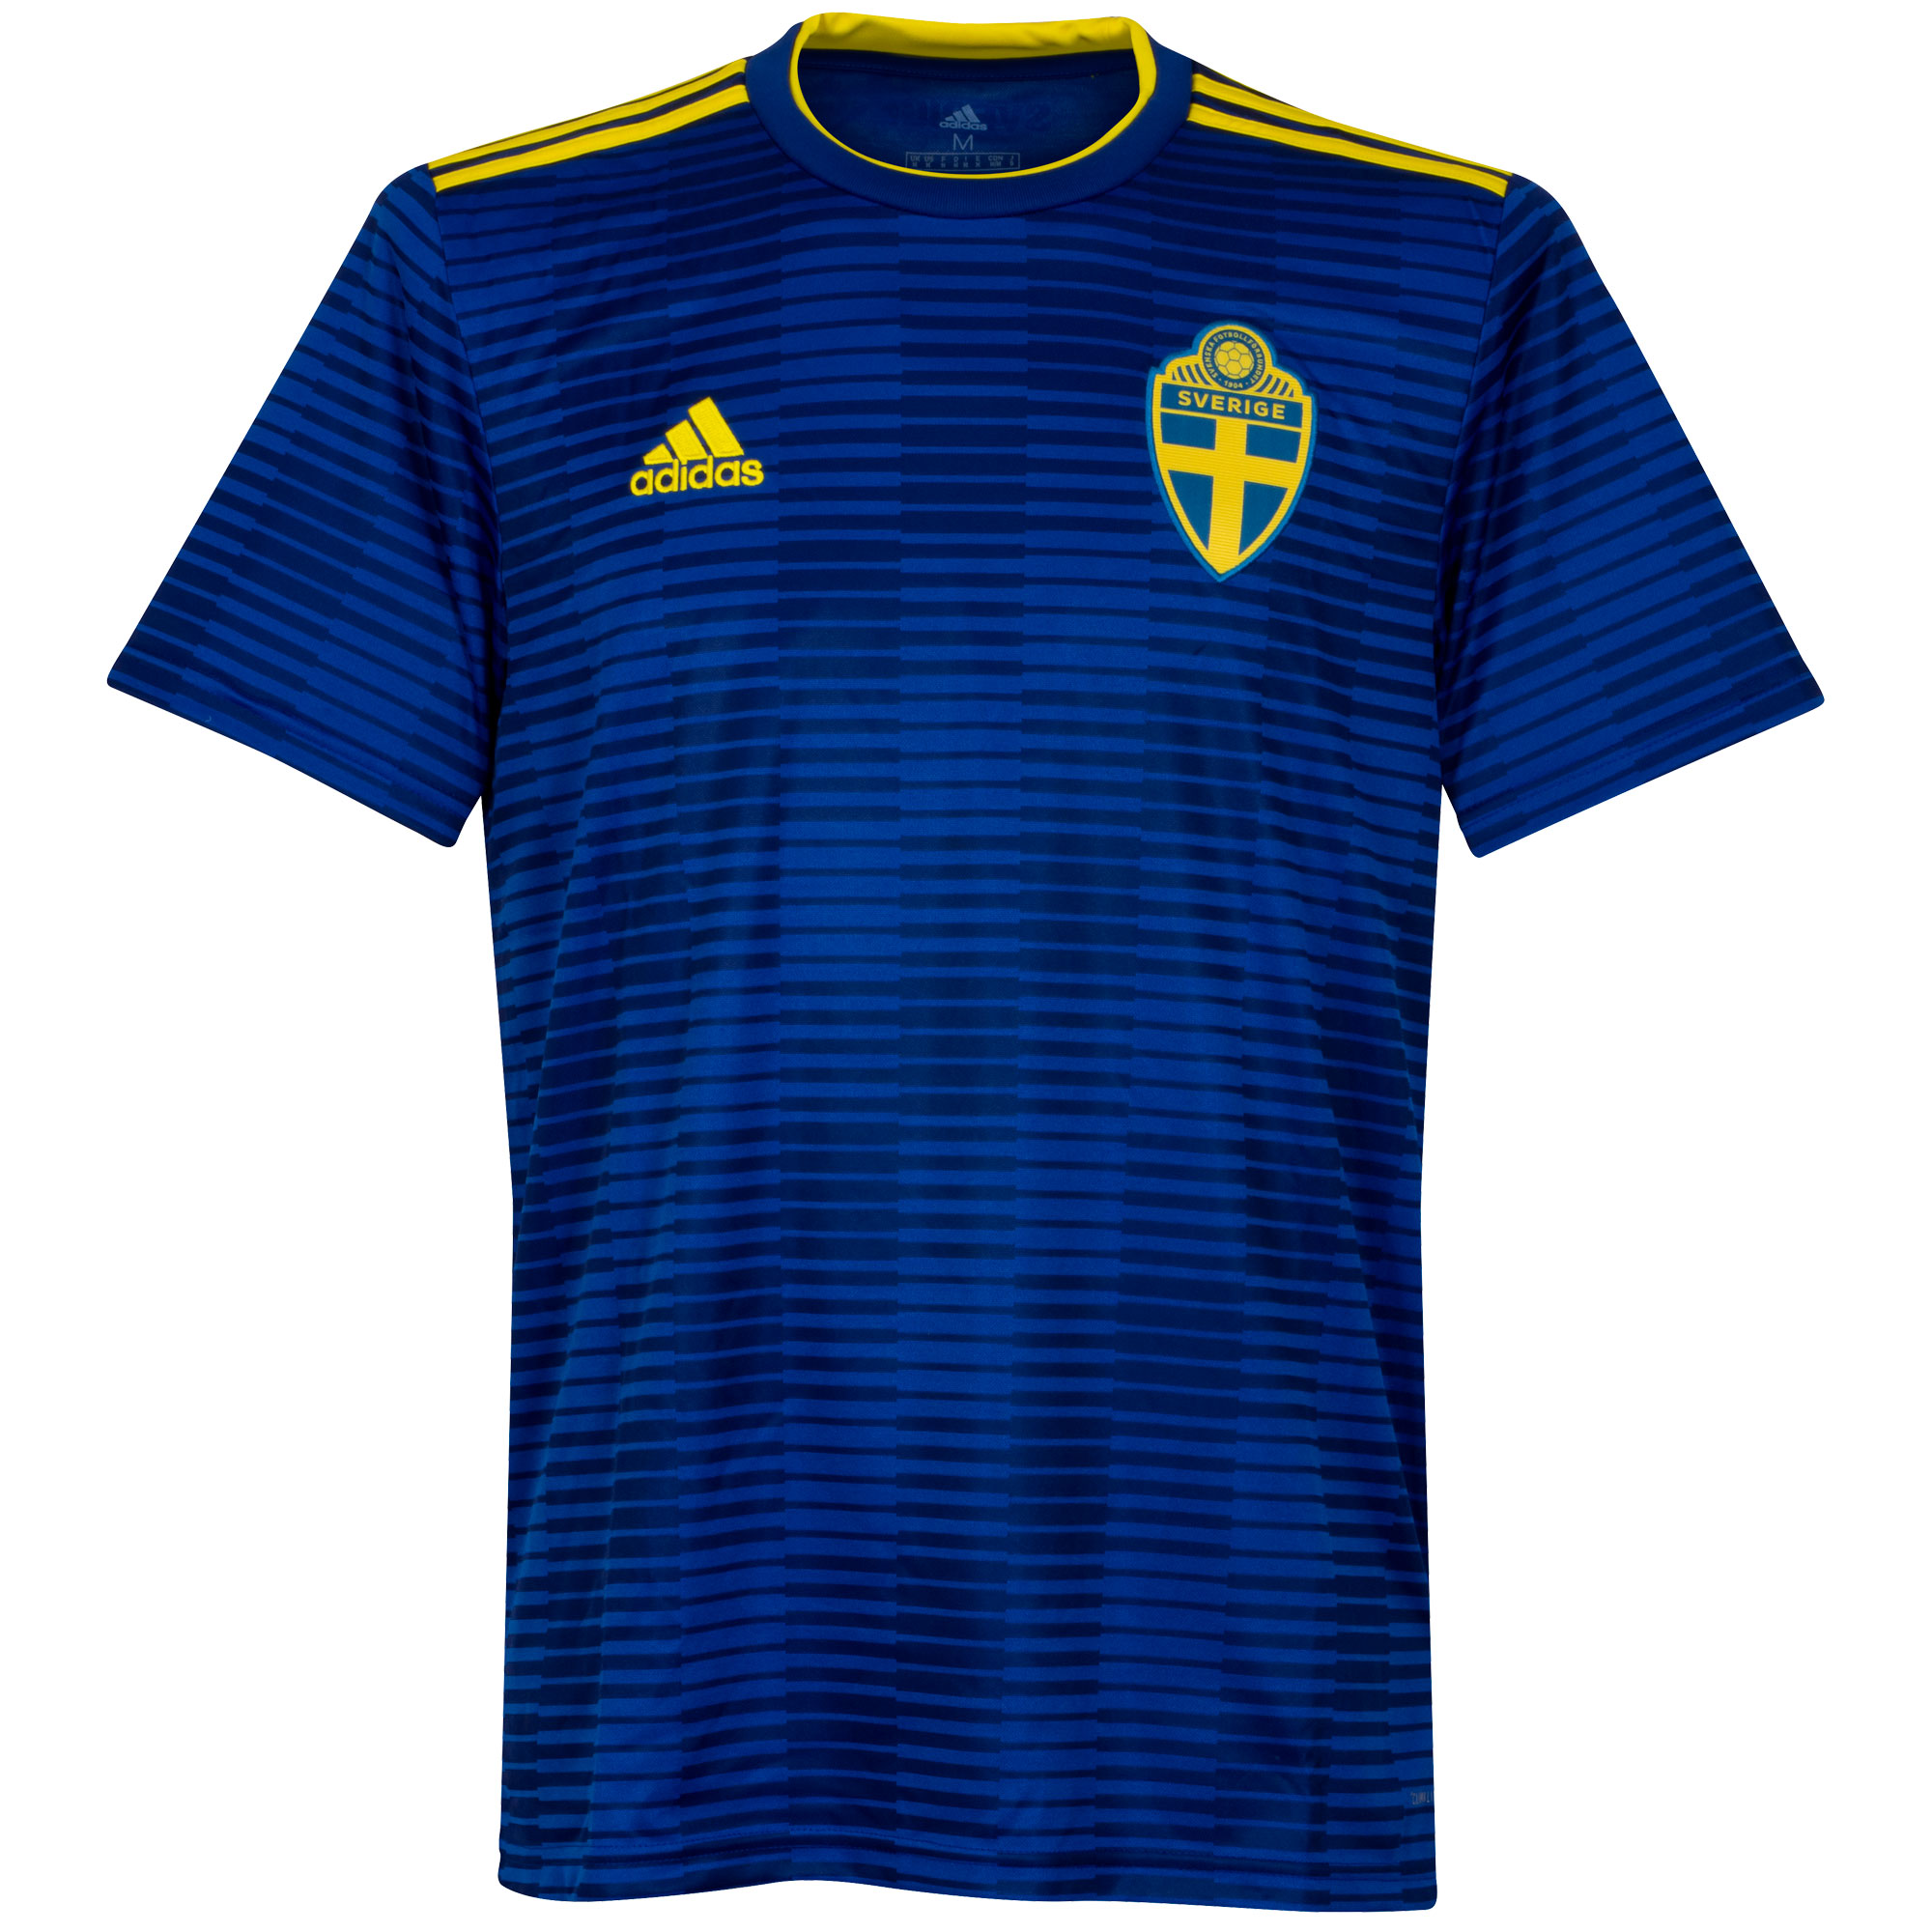 Sweden Away Shirt 2018 2019 - 42